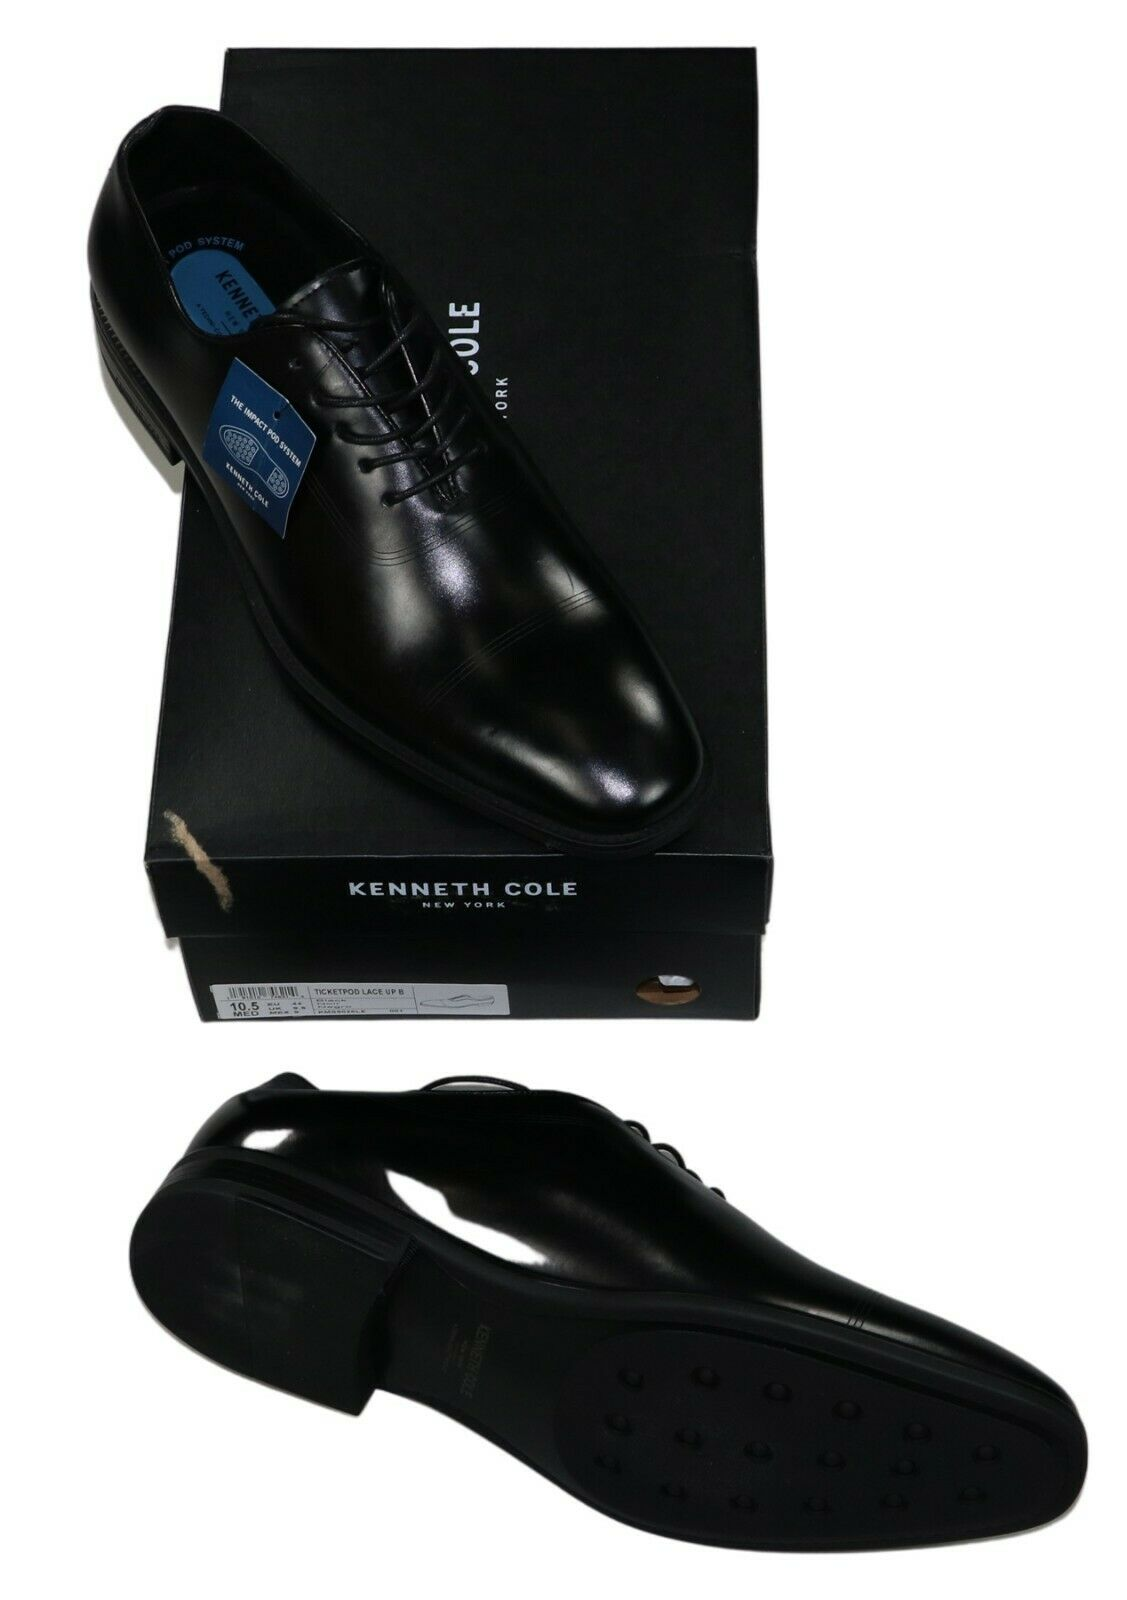 Kenneth Cole New York Ticketpod Lace-Up Dress Shoes Black 10.5 Store Display